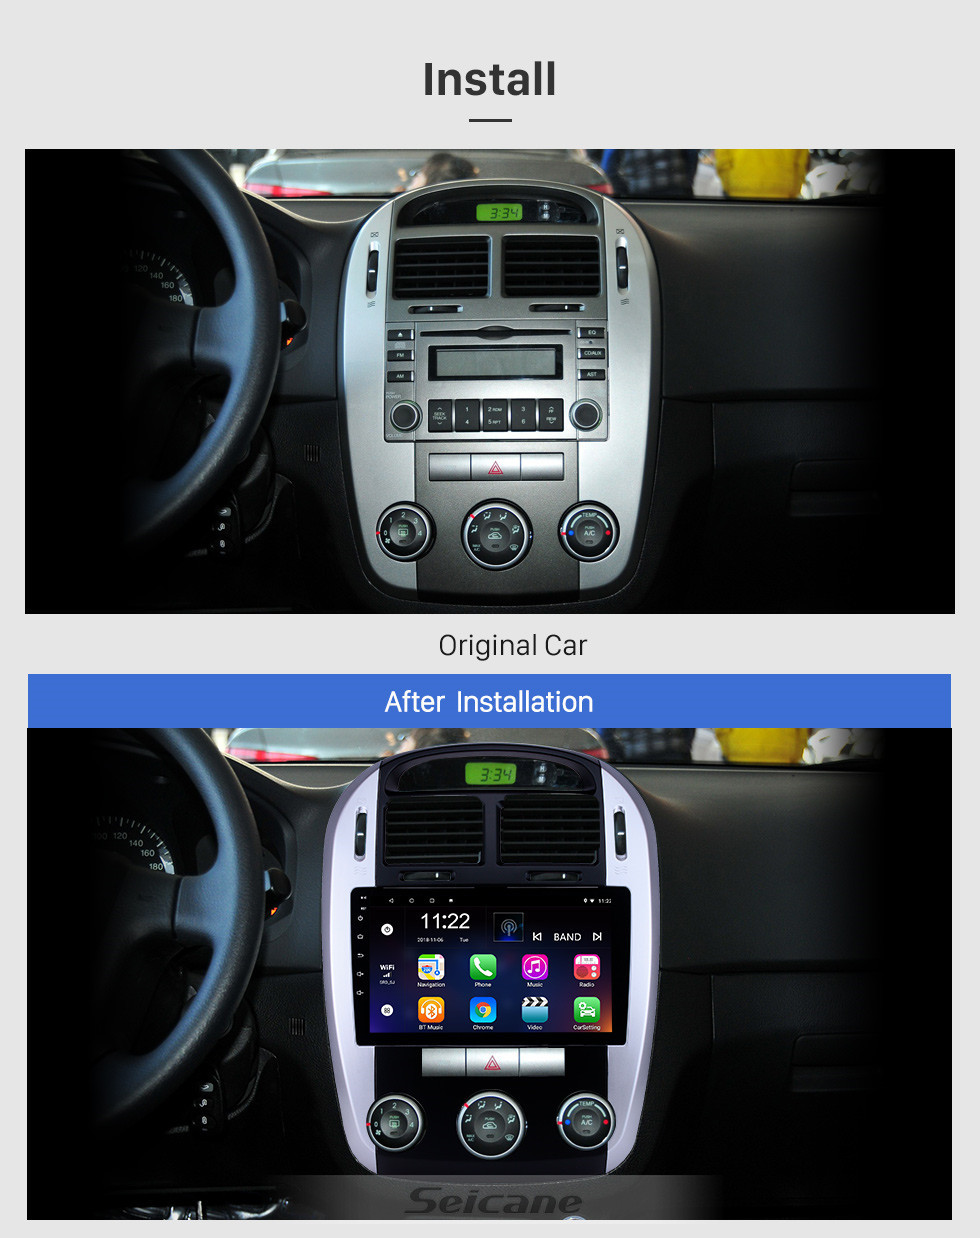 Seicane Android 10.0 9 inch GPS Navigation Radio for 2012-2016 Kia Cerato with HD Touchscreen Carplay Bluetooth WIFI USB AUX support Mirror Link OBD2 SWC